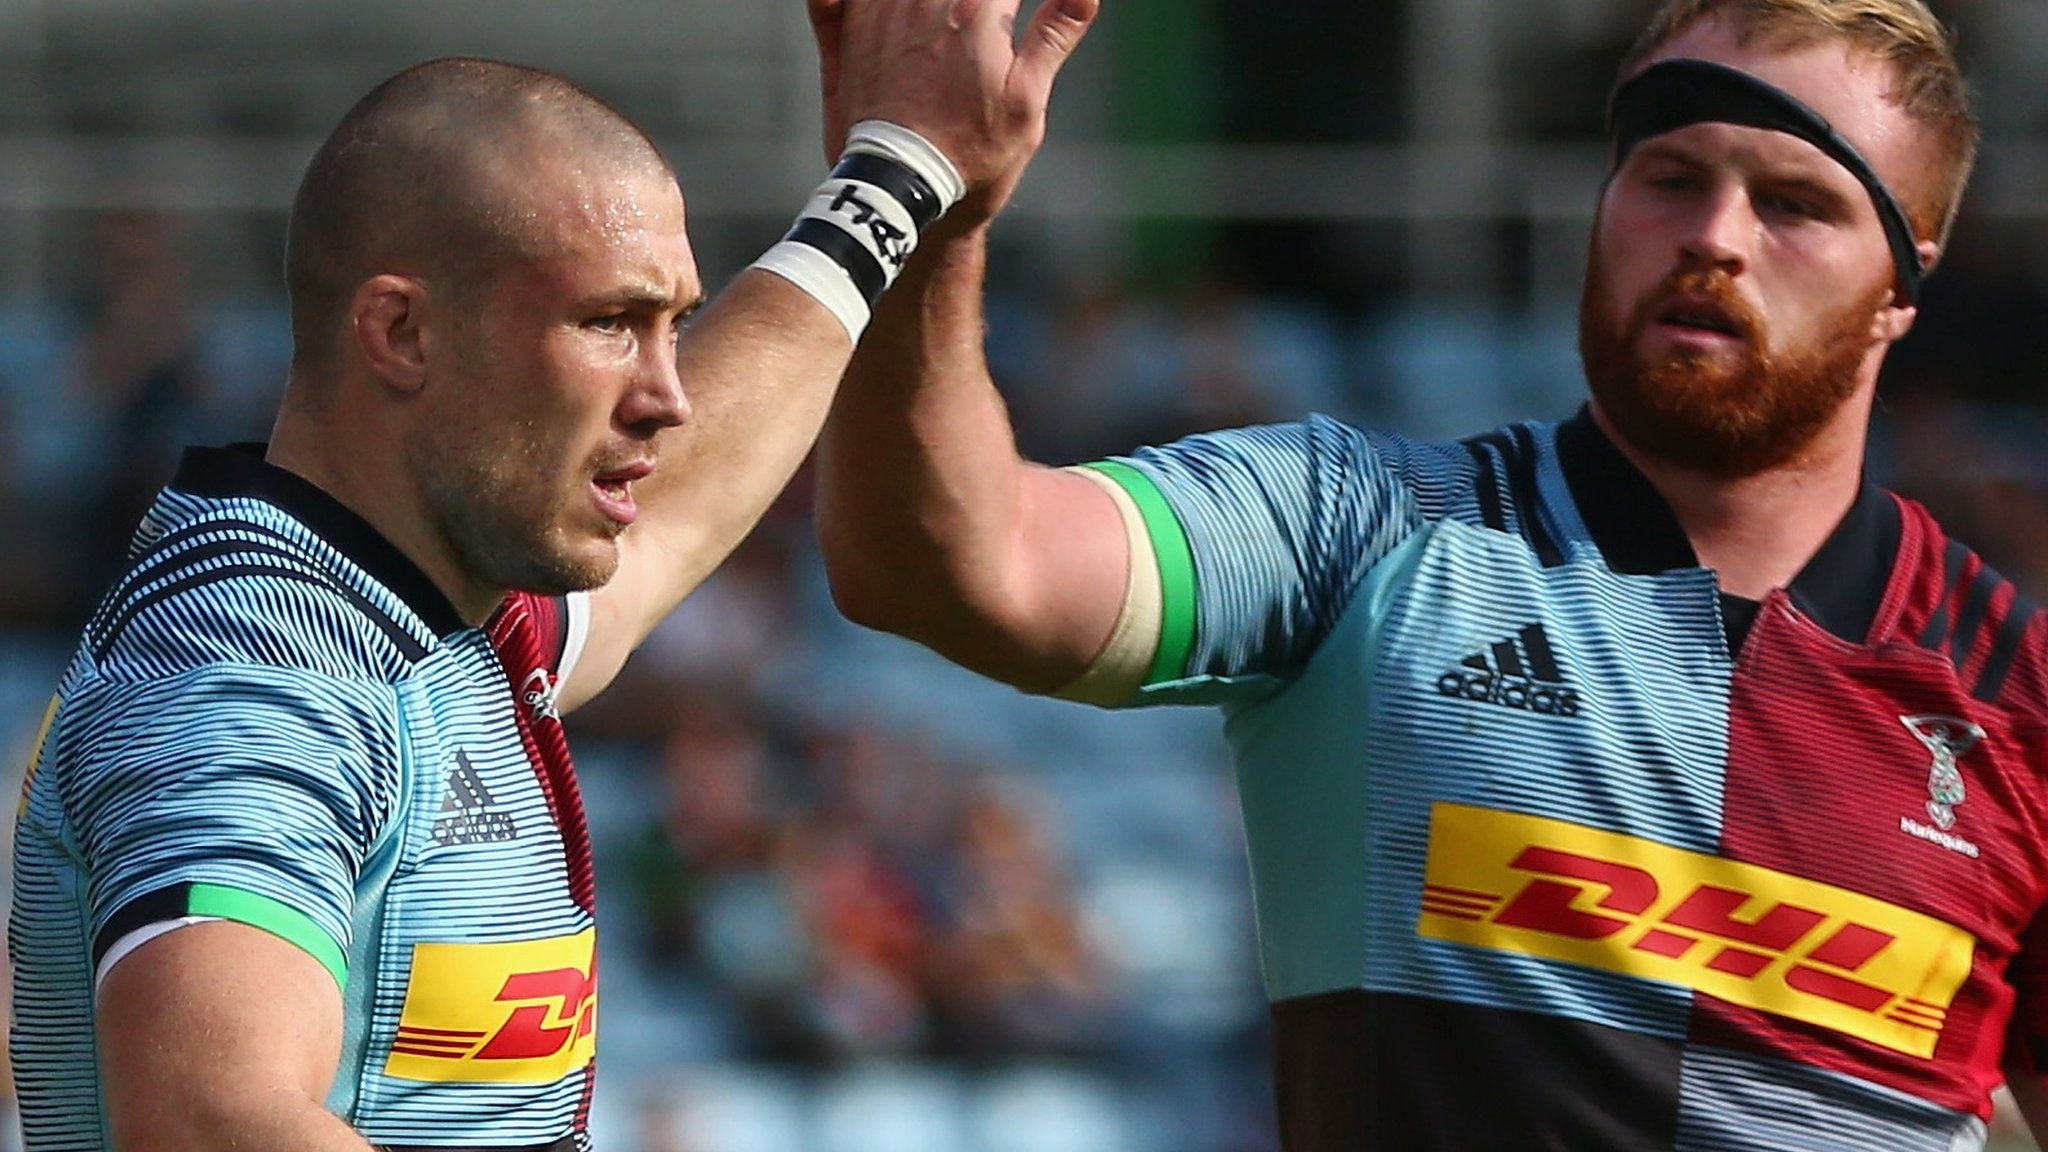 European Rugby Challenge Cup: Harlequins power to win over Agen